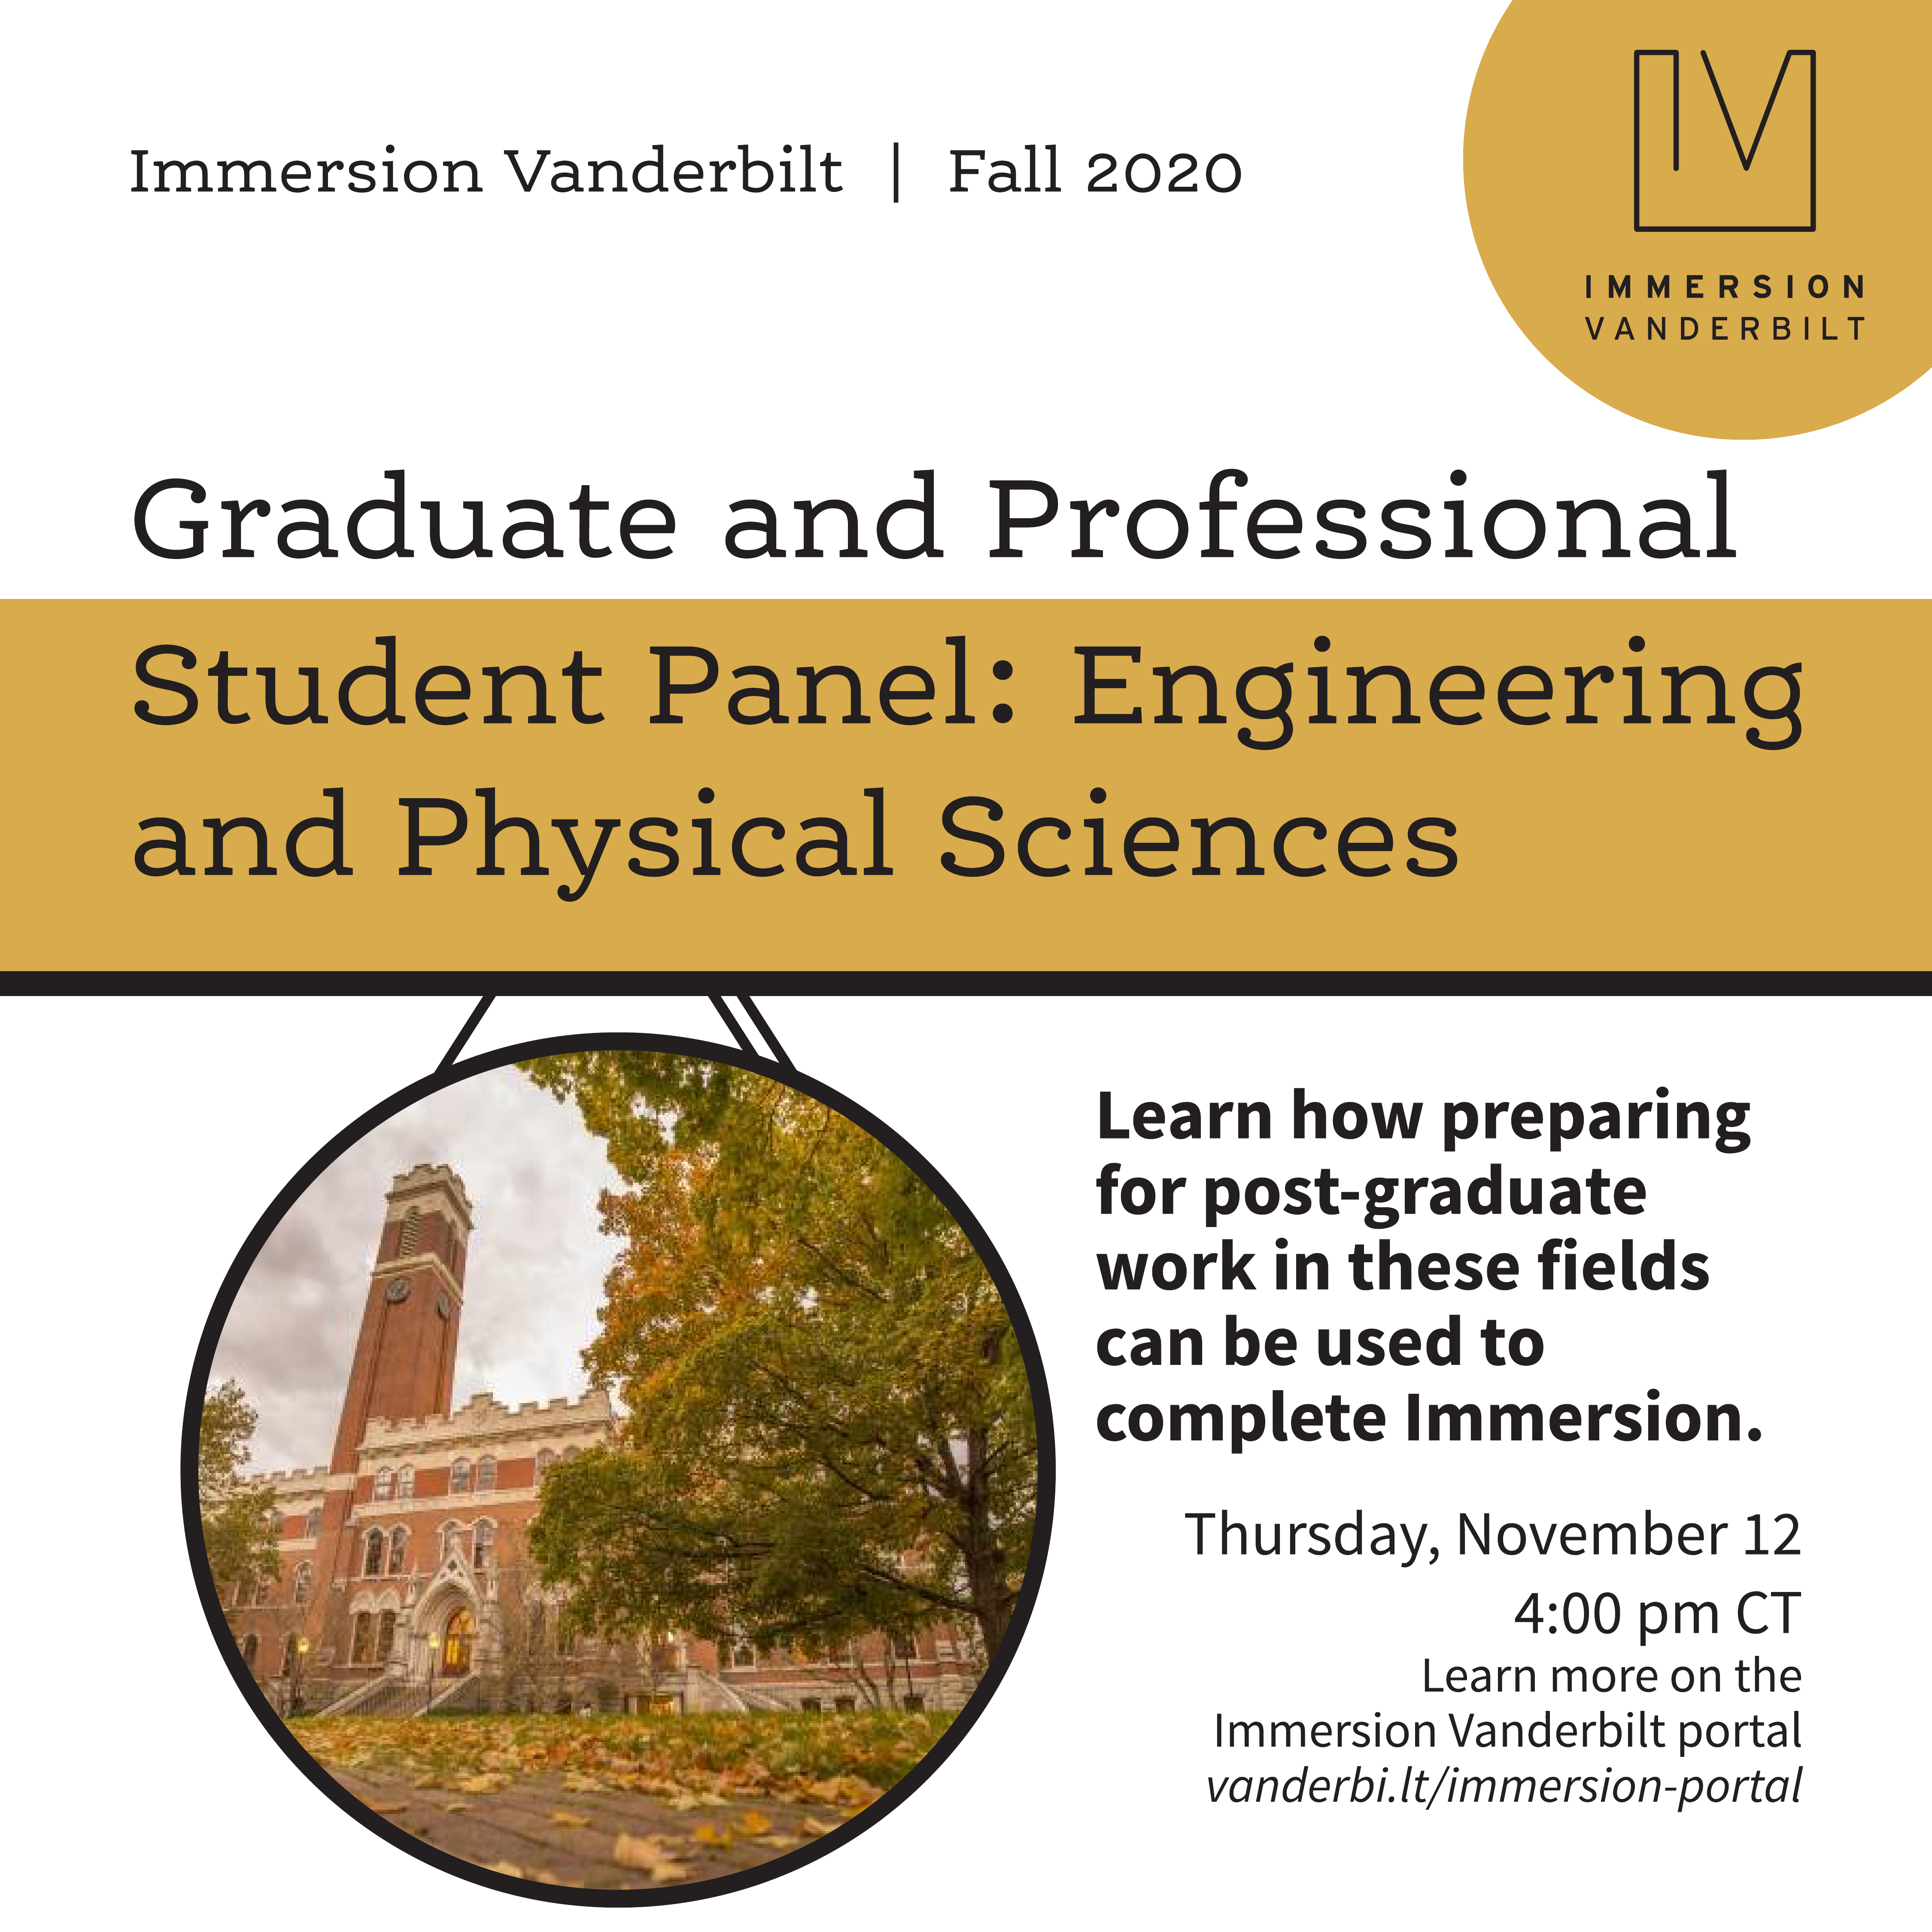 flyer advertising the graduate and professional student panel for engineering and phsyical sciences